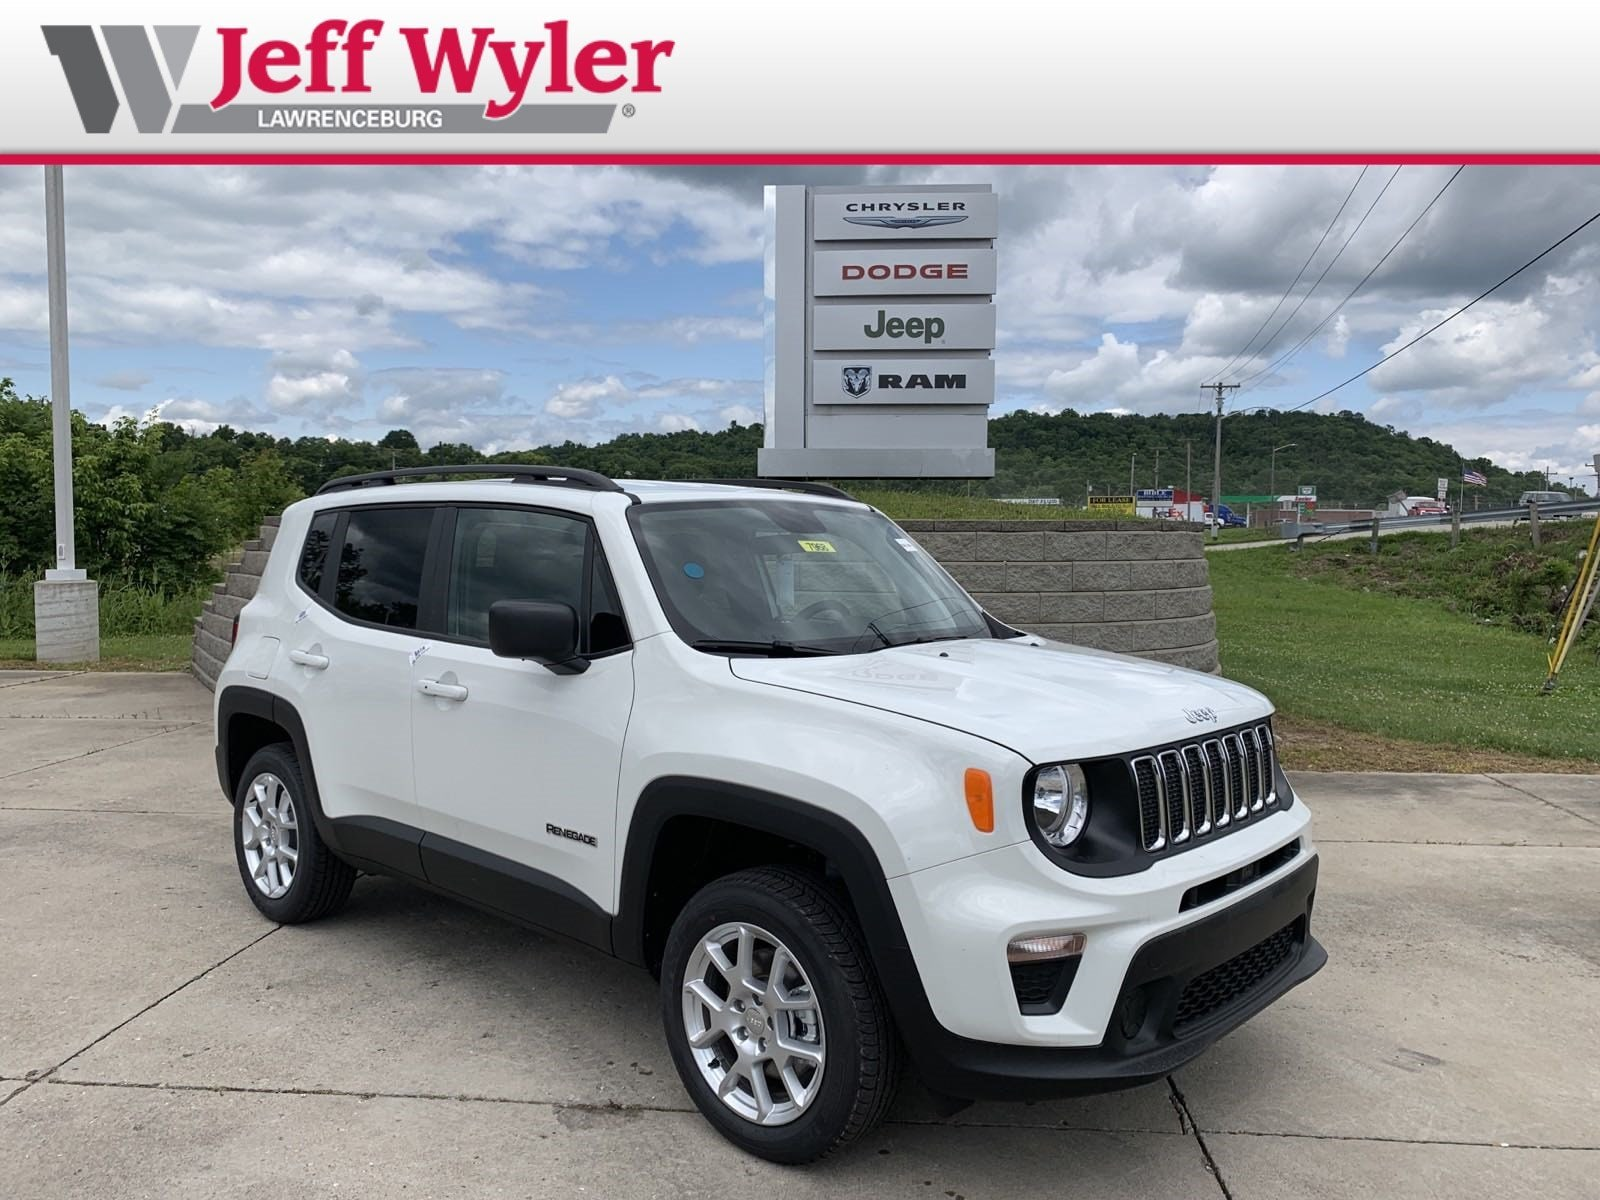 Jeff Wyler Jeep >> Jeff Wyler Chrysler Jeep Dodge Ram New And Used Chrysler